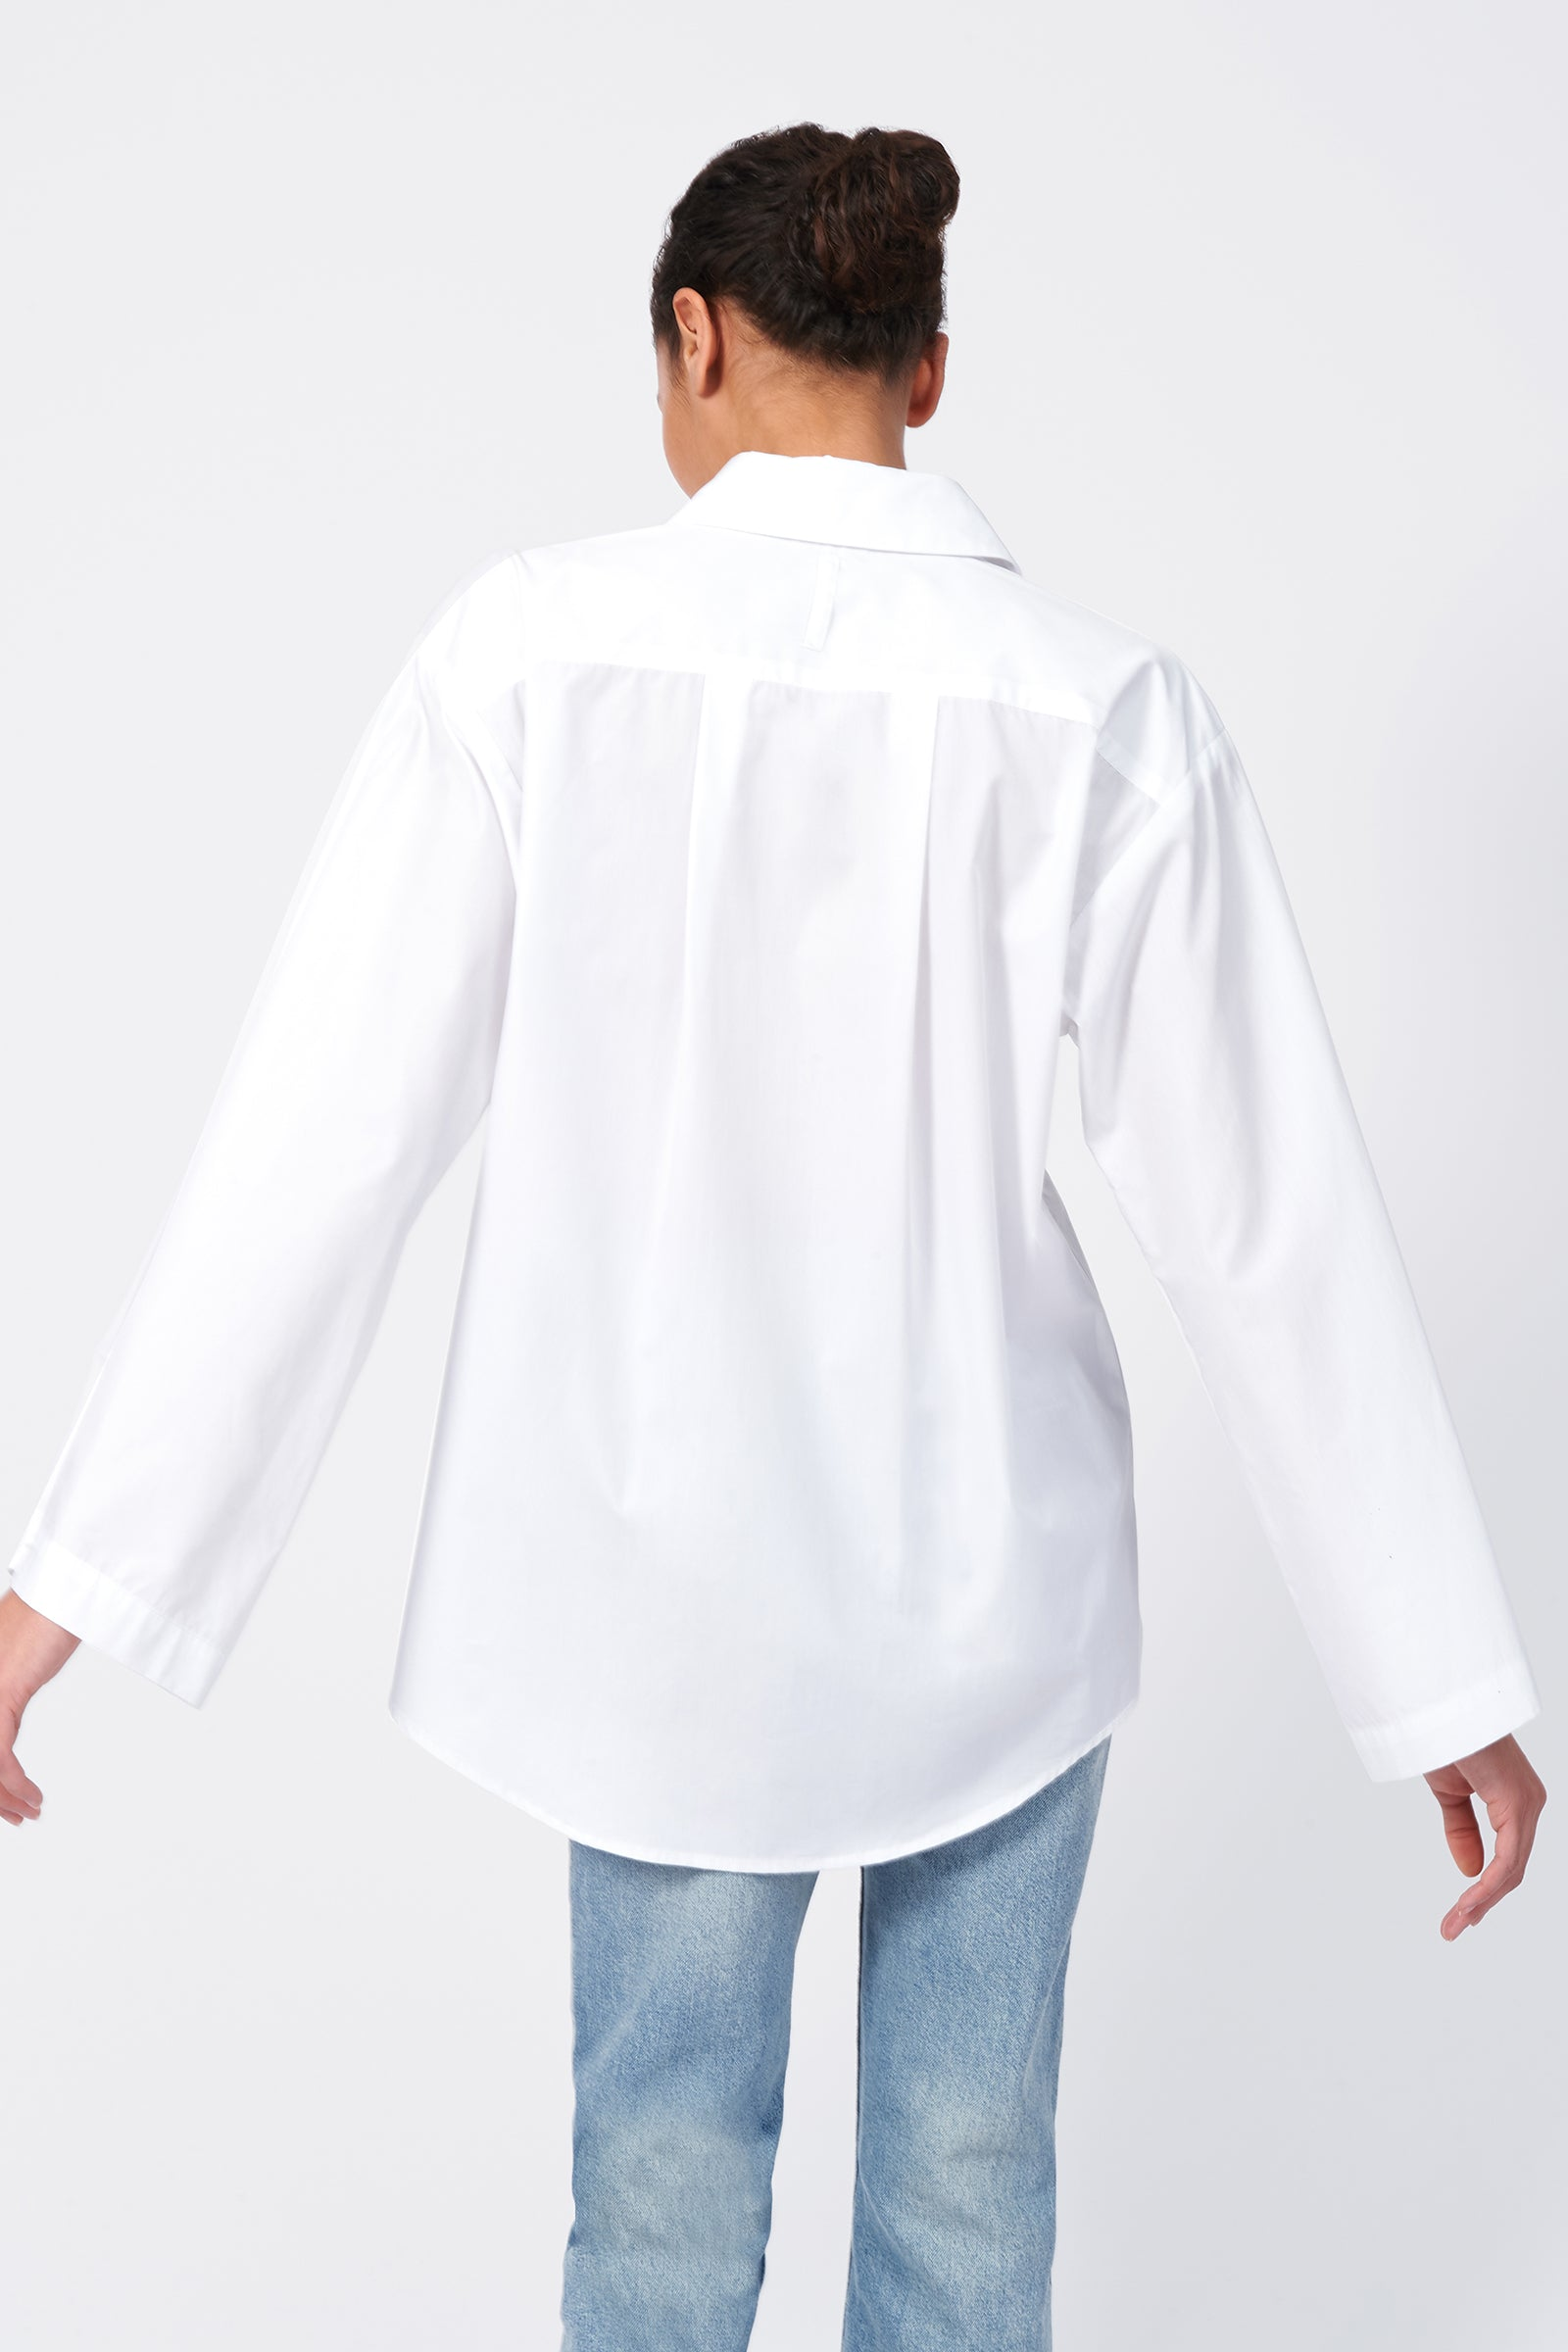 Kal Rieman Wide Sleeve Shirt in White Poplin on Model Front View